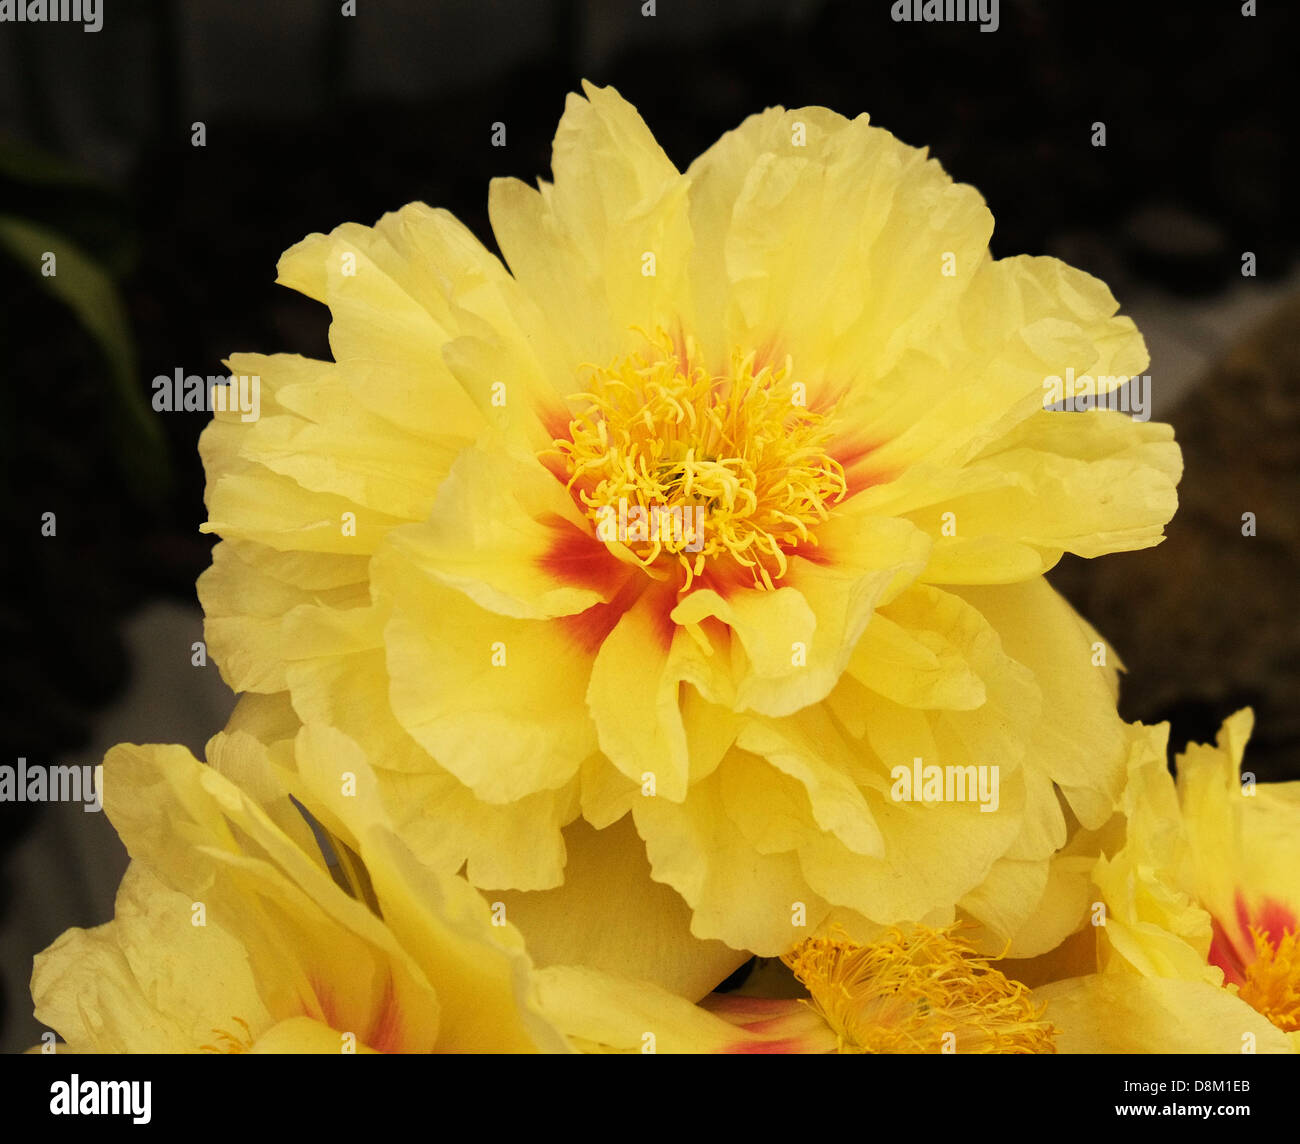 A peony on display at the Chelsea Flower Show. - Stock Image